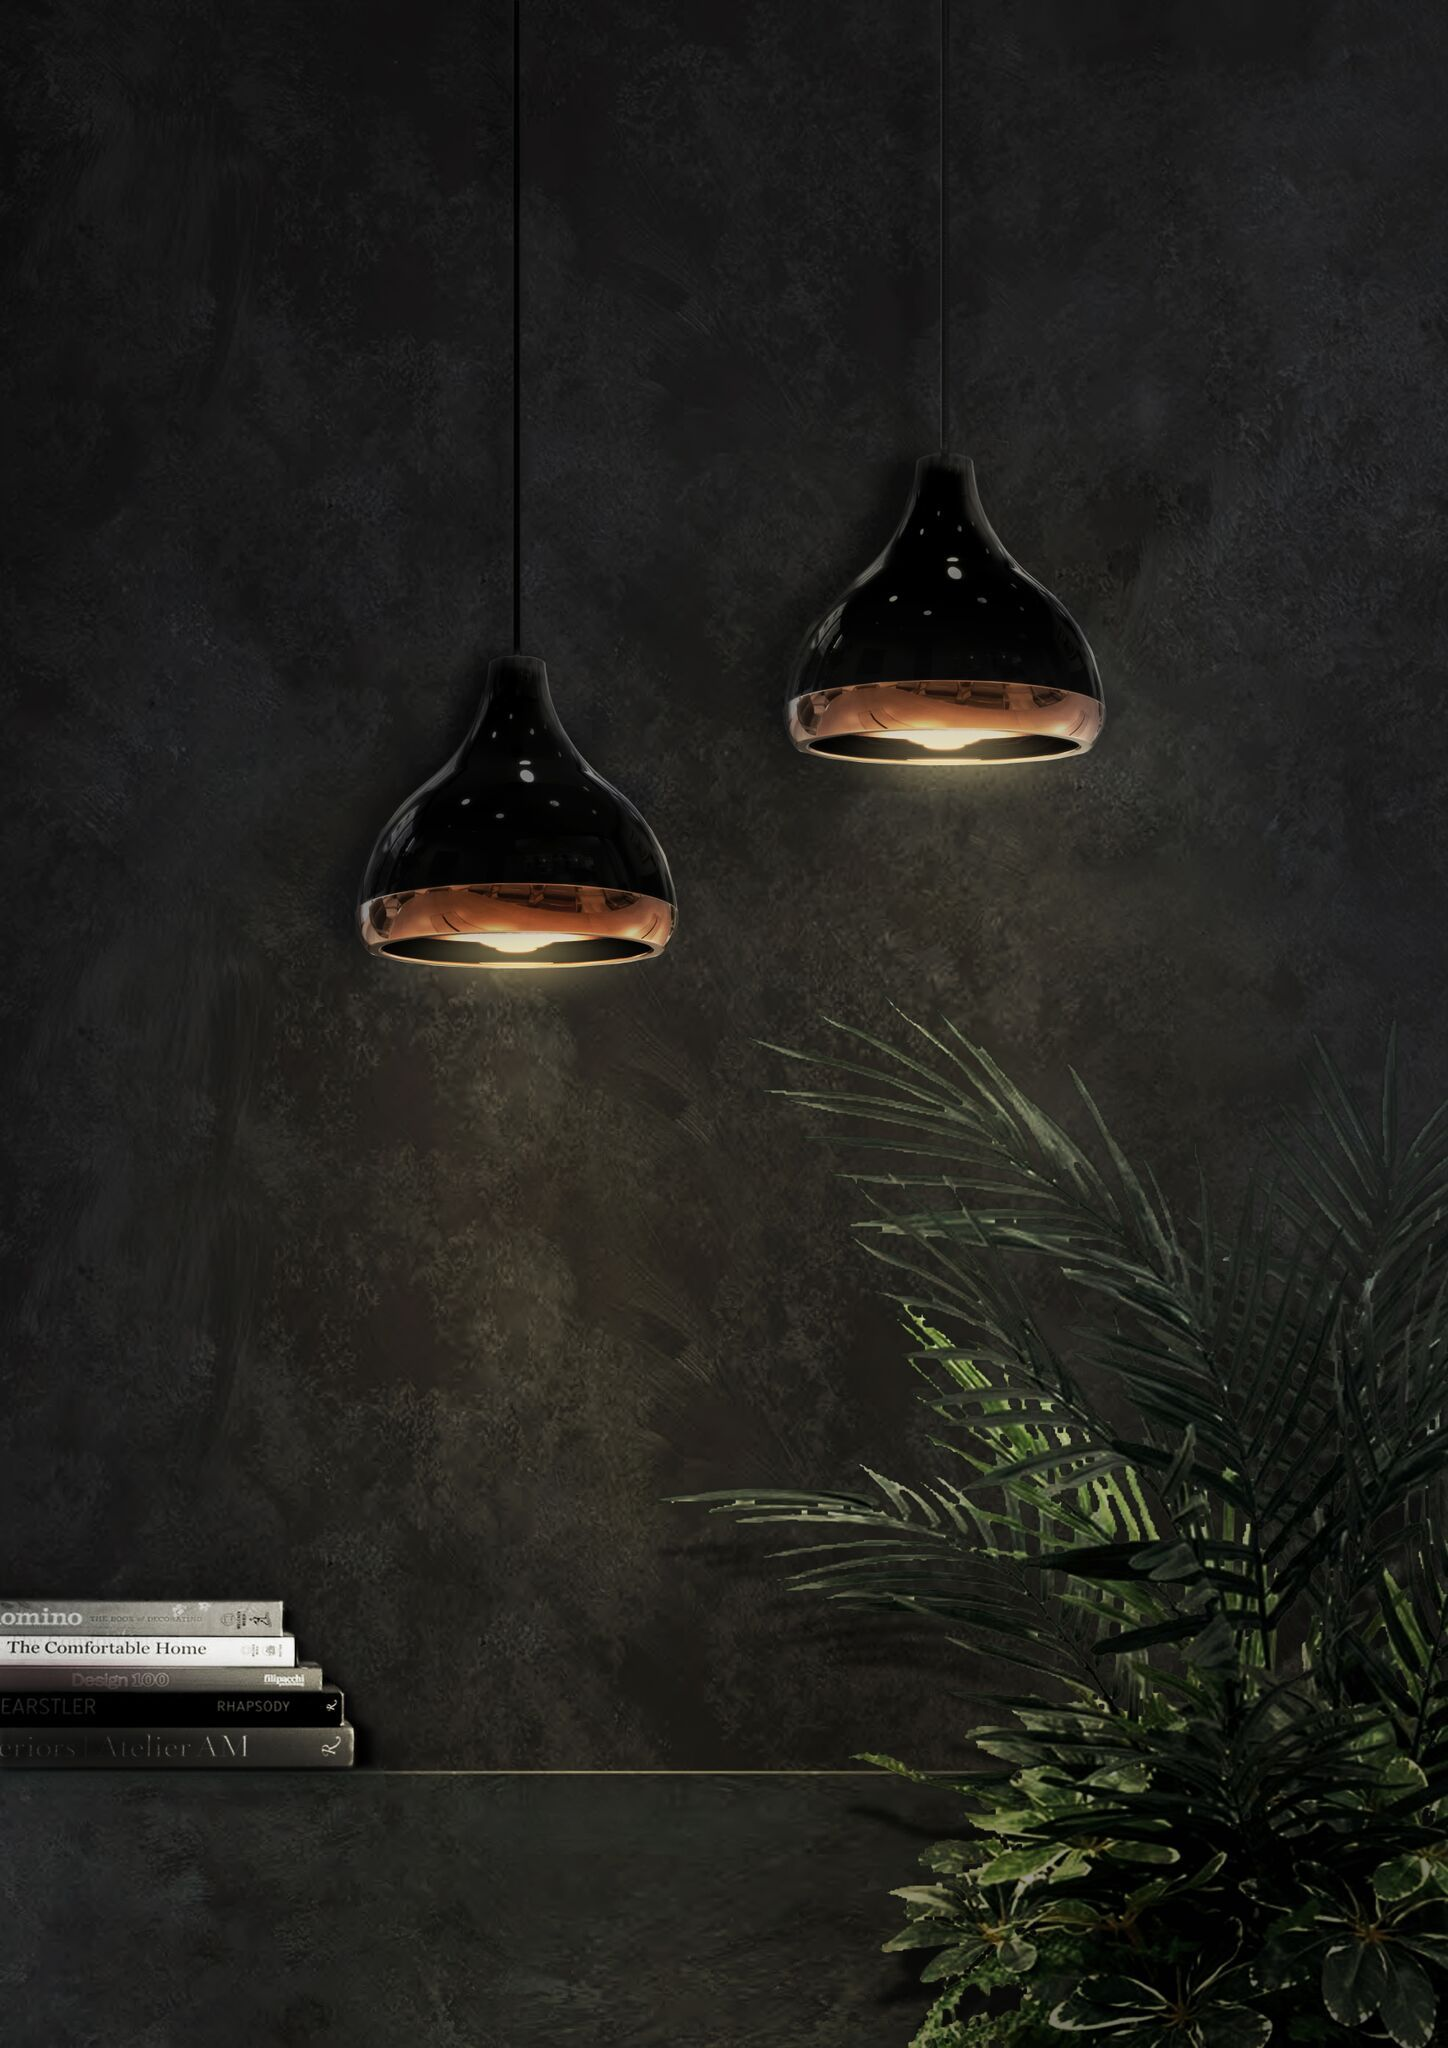 Now You Can Have The Lighting Design Of Your Dreams- Meet Hanna 6 Lighting Design Now You Can Have The Lighting Design Of Your Dreams- Meet Hanna! Now You Can Have The Lighting Design Of Your Dreams Meet Hanna 6